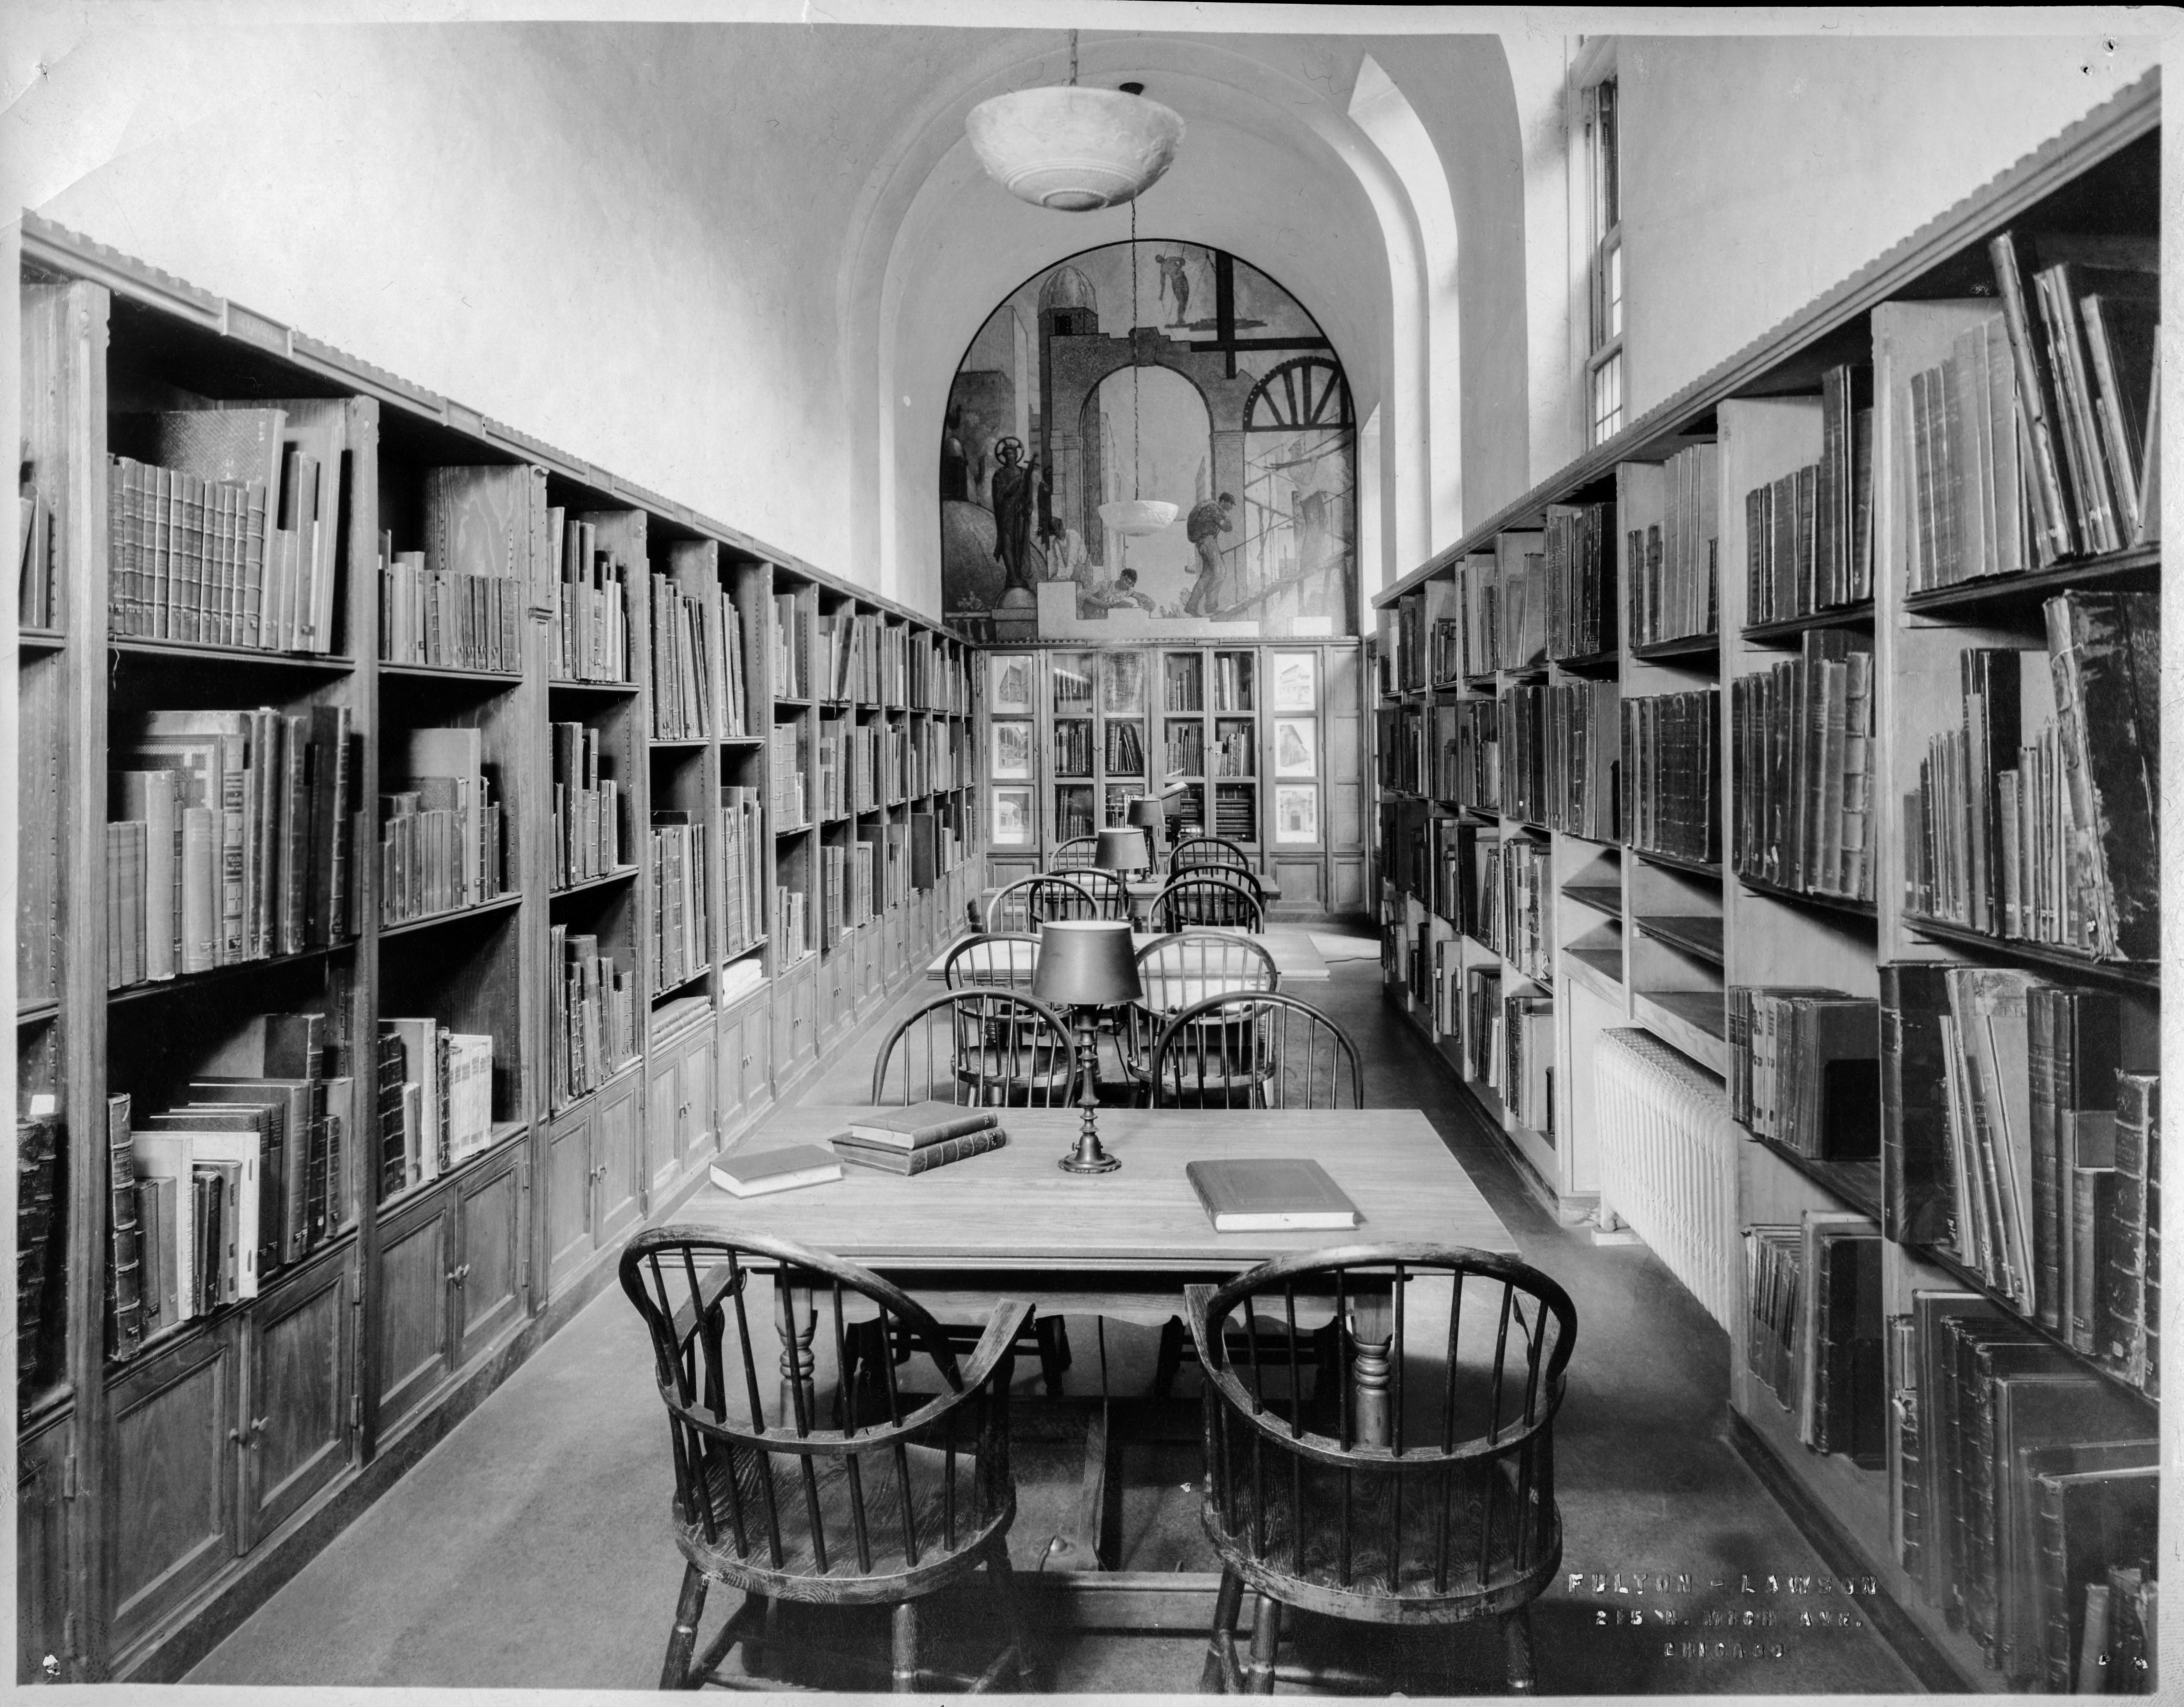 Archival image of the Ryerson Library Reading Room